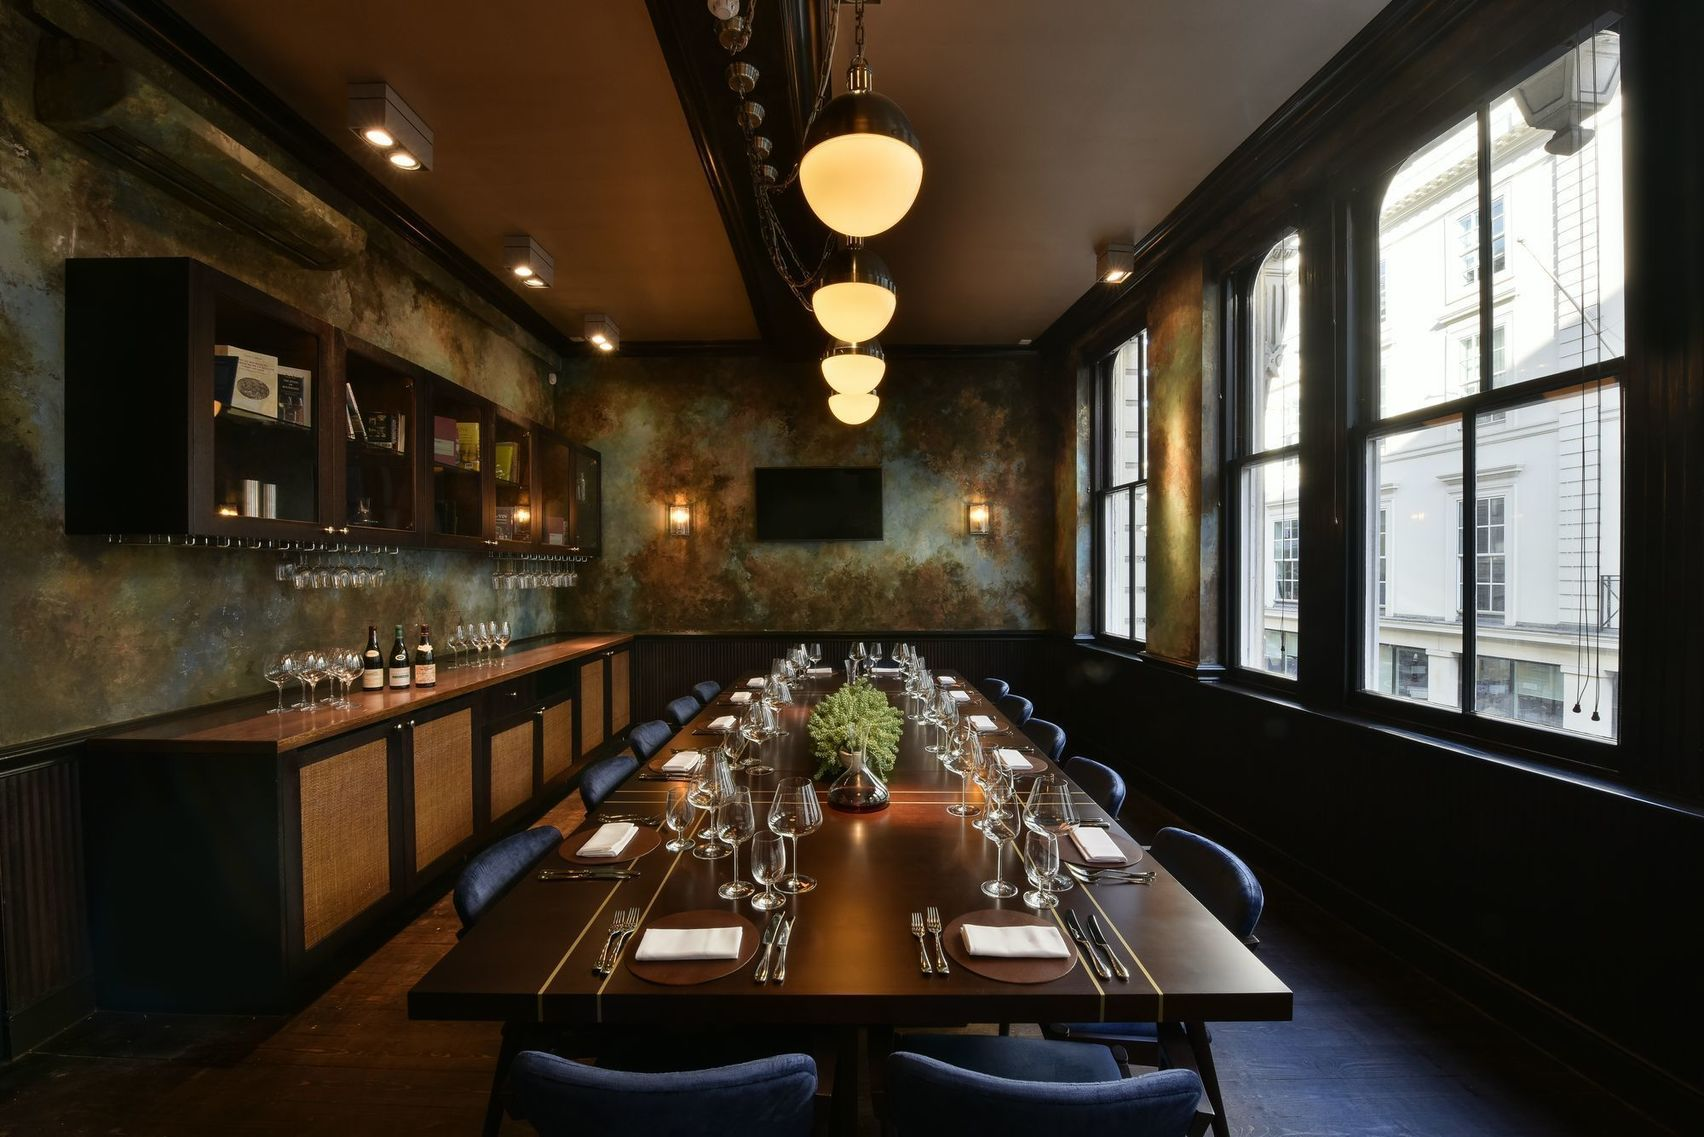 Book jeroboam room cabotte restaurant london headbox for Best private dining rooms city of london